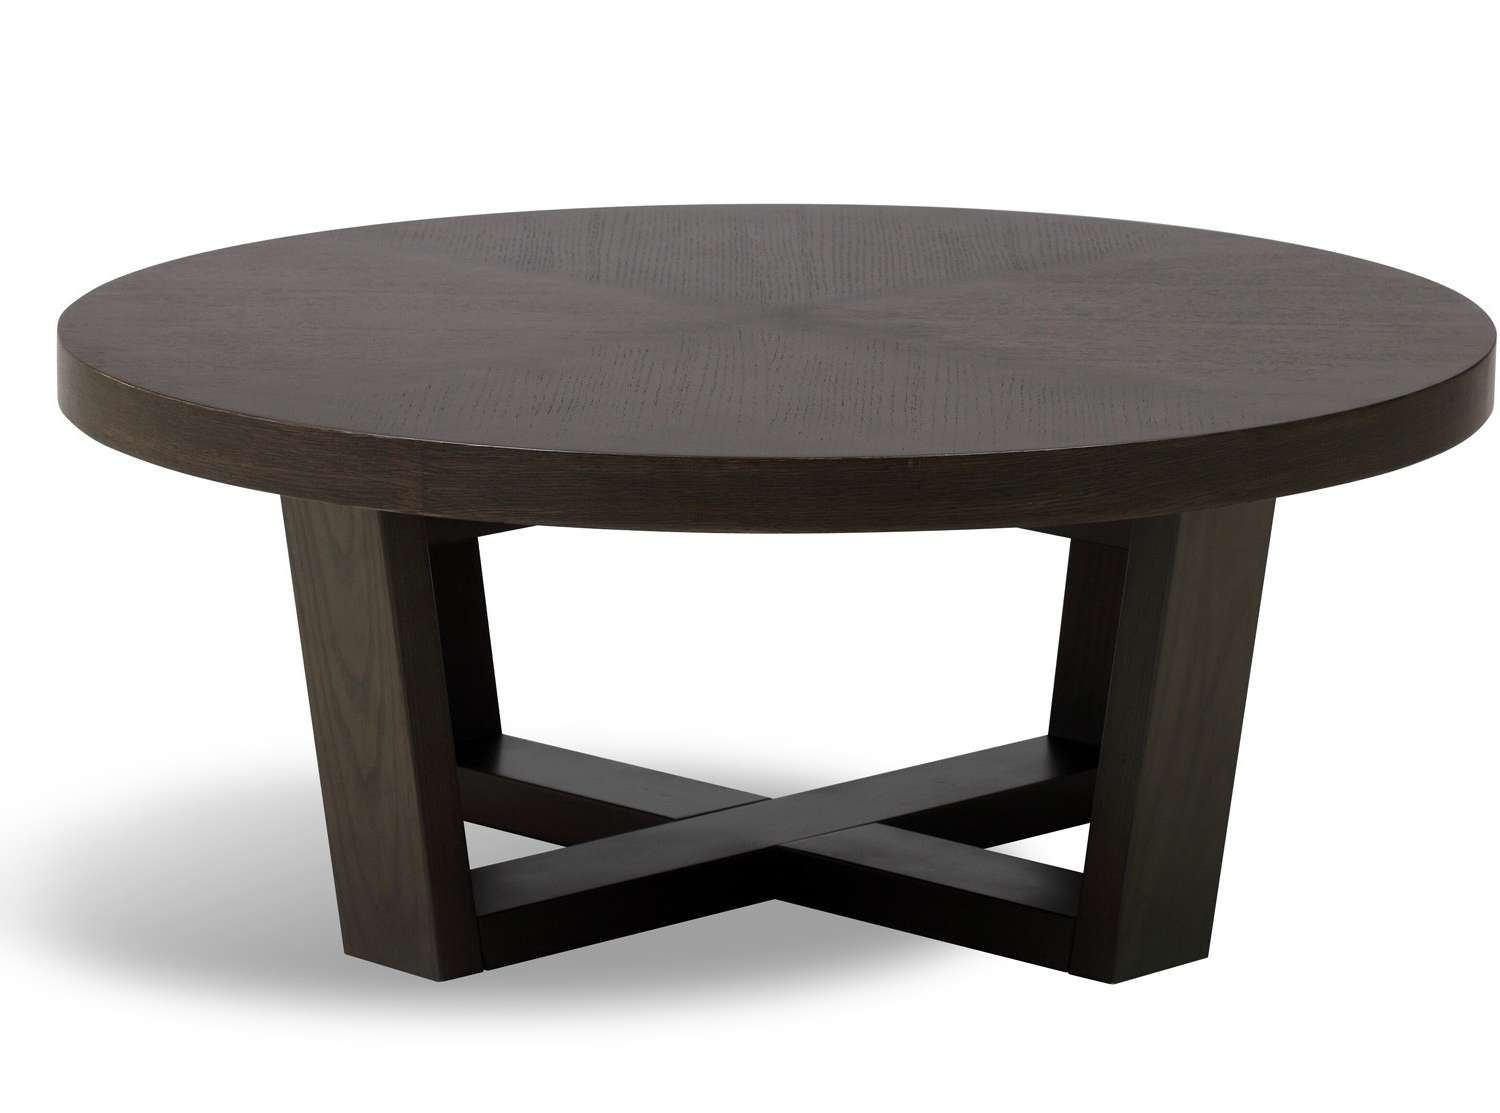 Recent Solid Round Coffee Tables For Coffee Tables : Round Coffee Table Circular Wood Padded Seagrass (View 13 of 20)